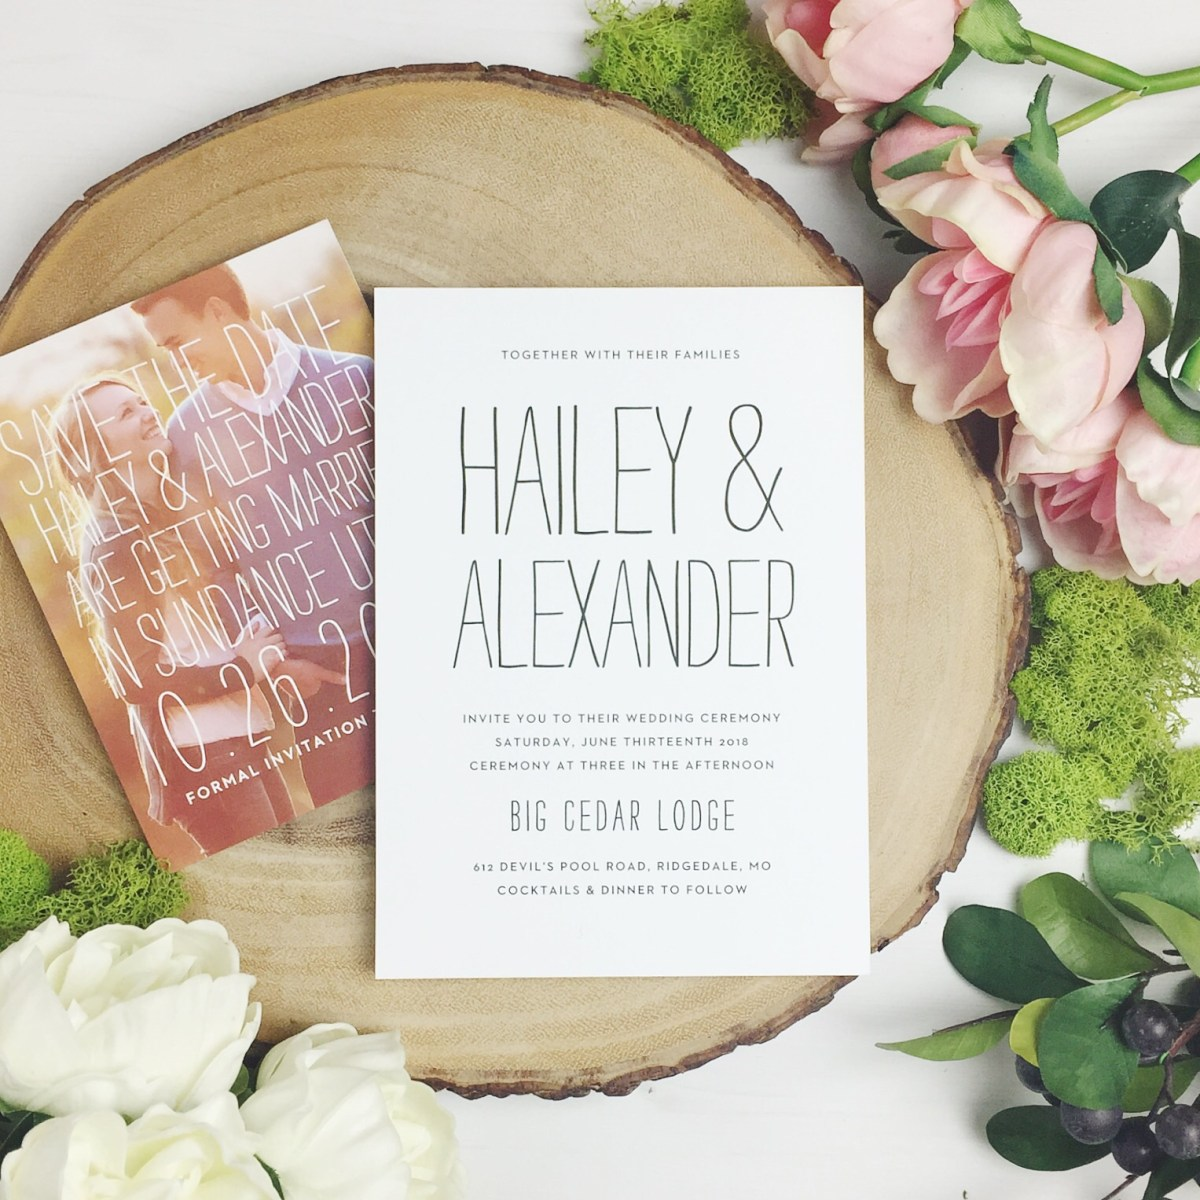 Custom Wedding Invitation Custom Wedding Invitations Done Right Off Beet Productions